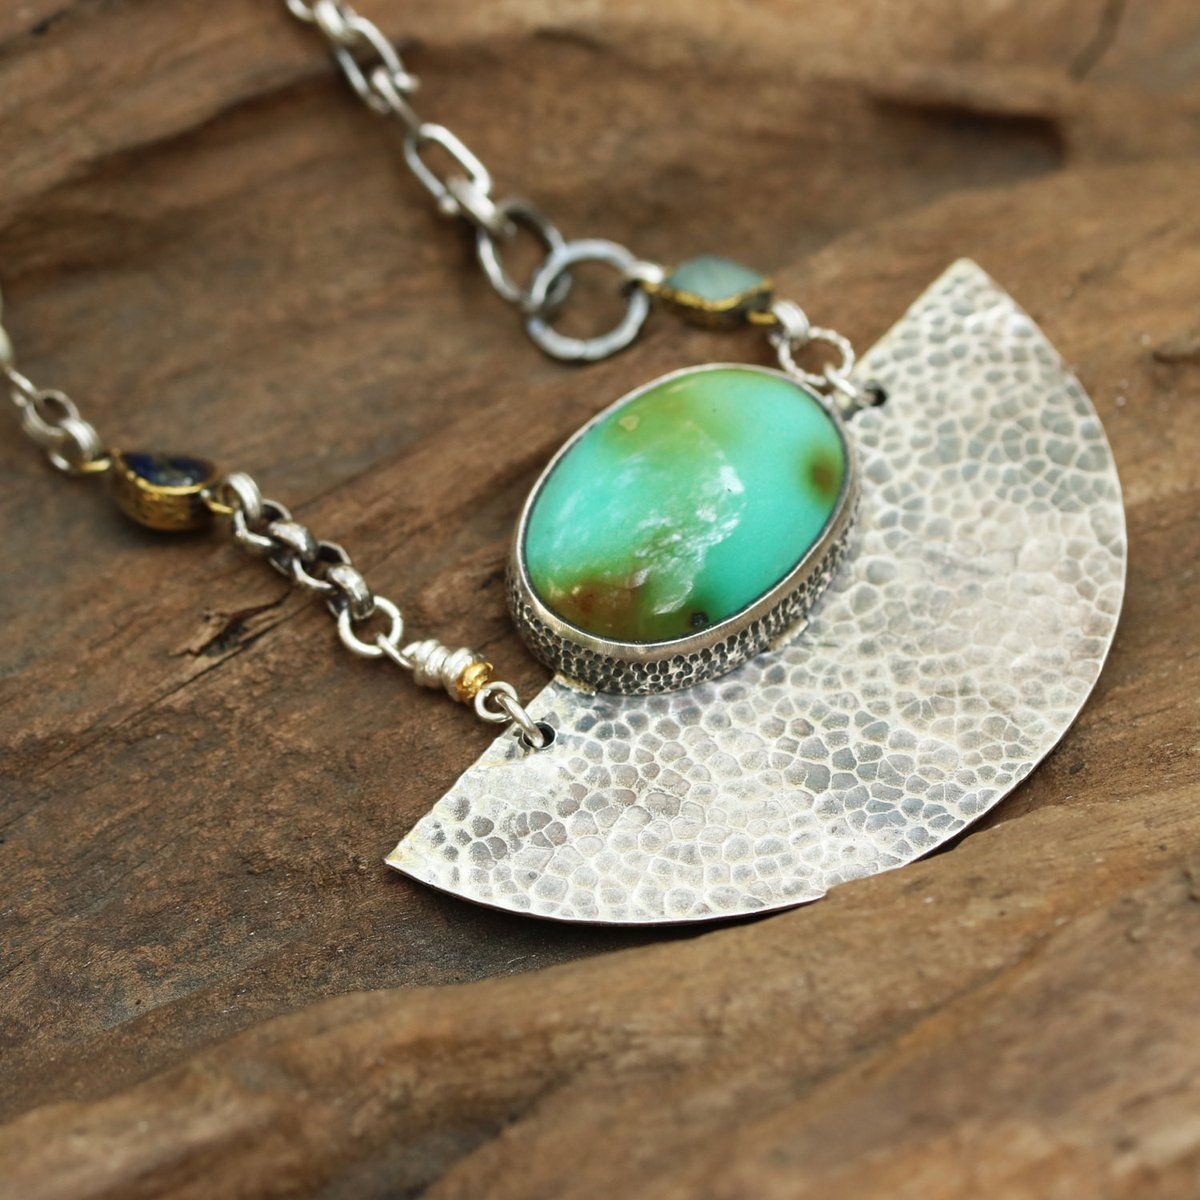 Green turquoise pendant necklace in silver bezel setting with silver